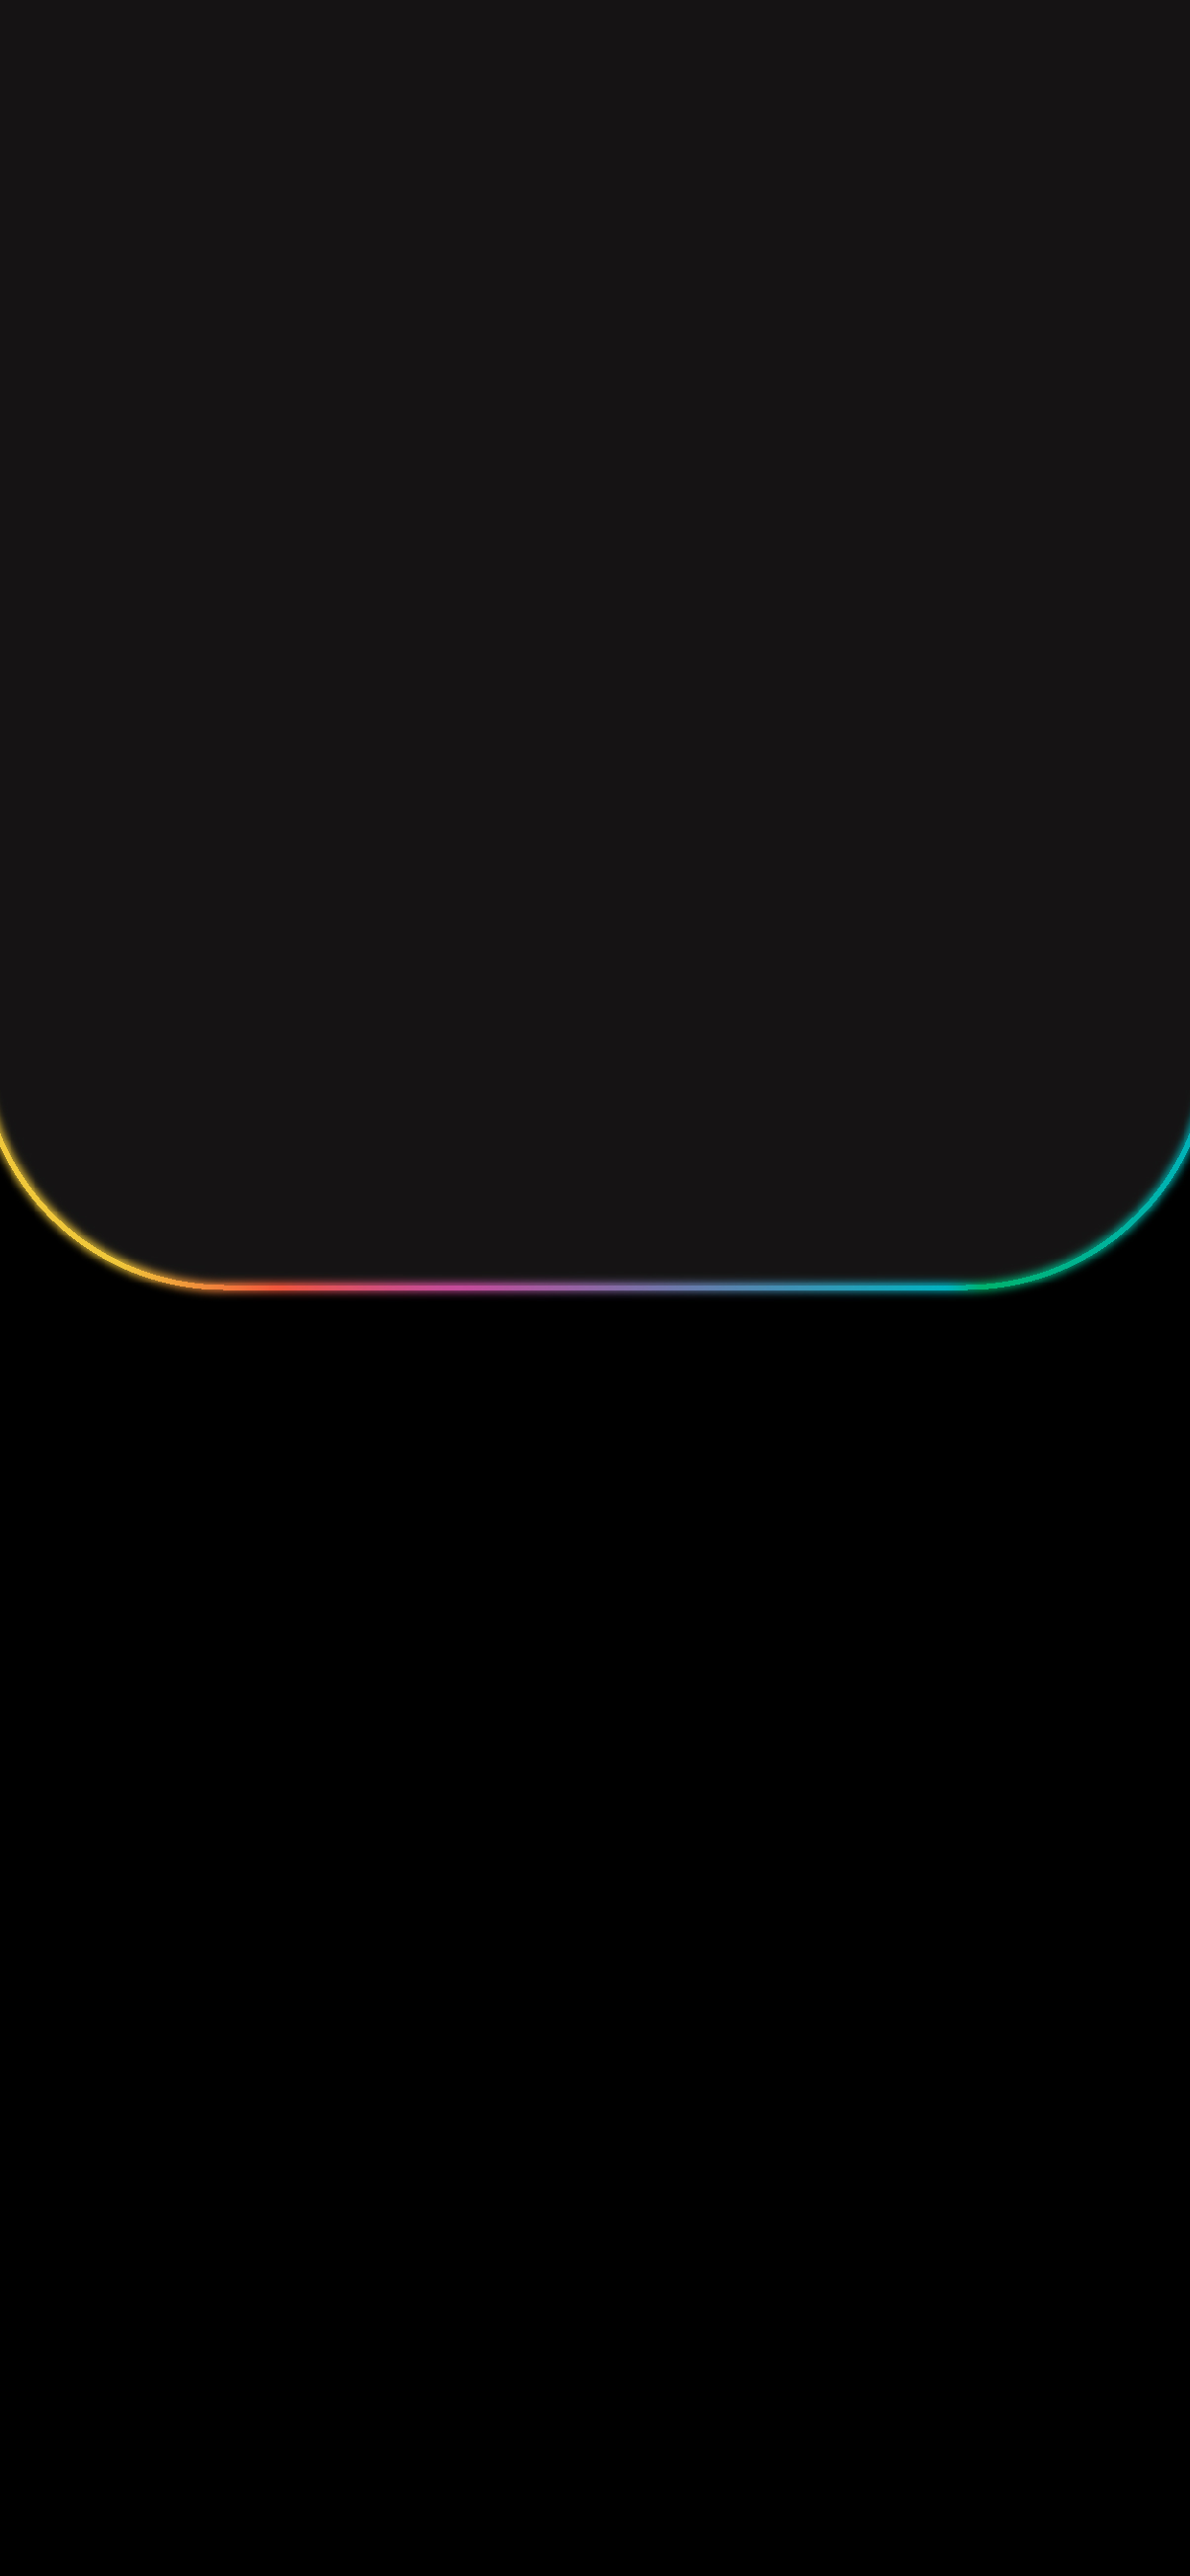 Simple and clean gradient line background for android or ios theme style